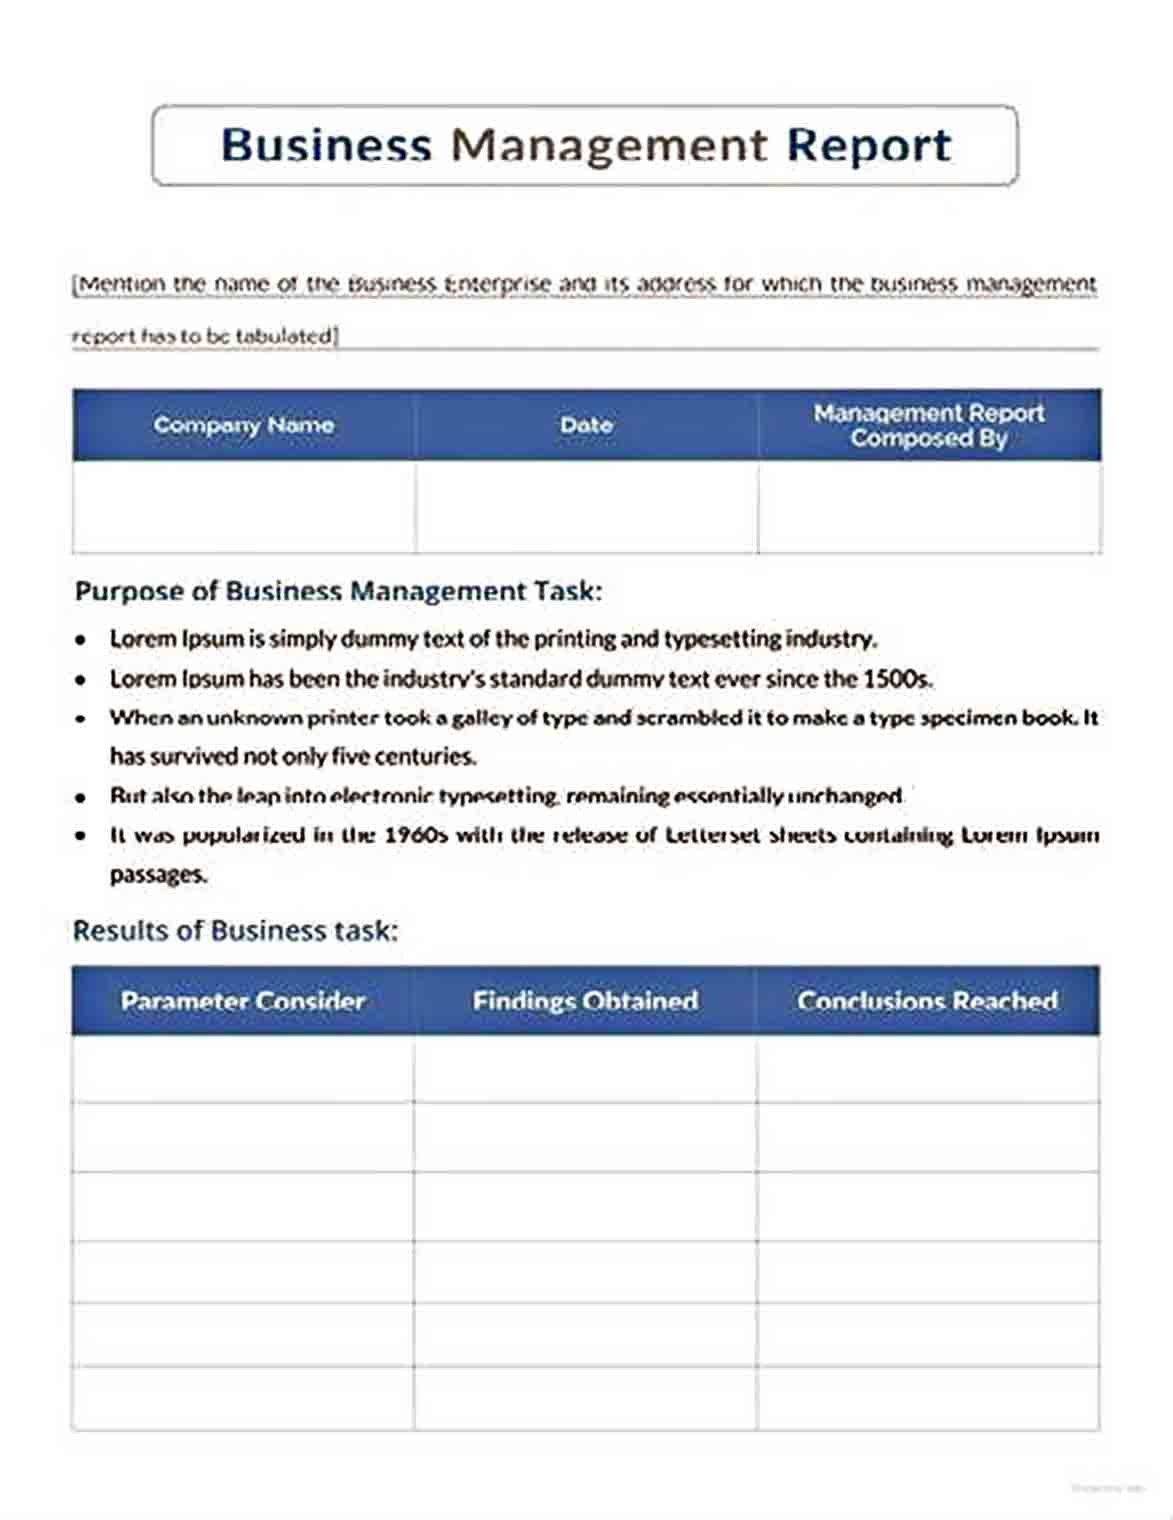 Templates business management report 1 440x622 1